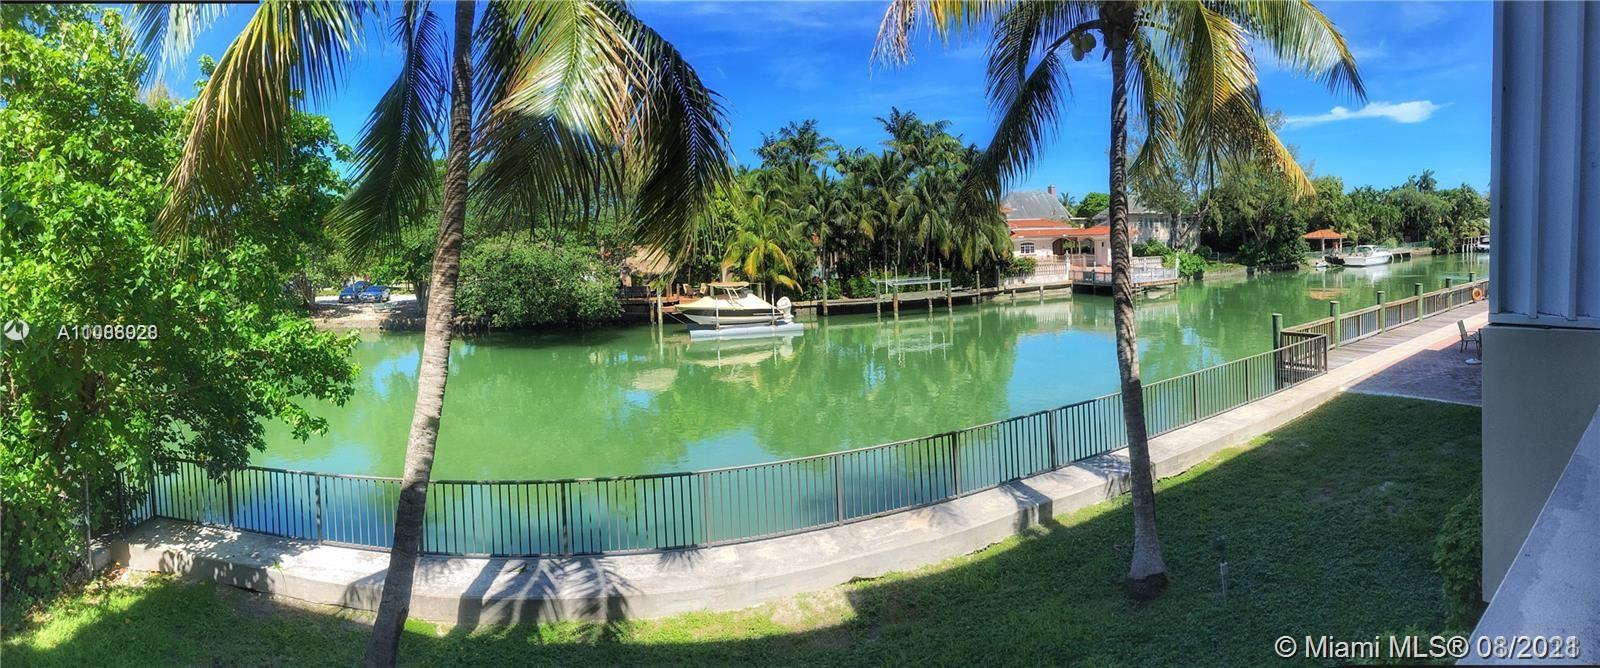 4011 N Meridian Ave #11 For Sale A11086928, FL